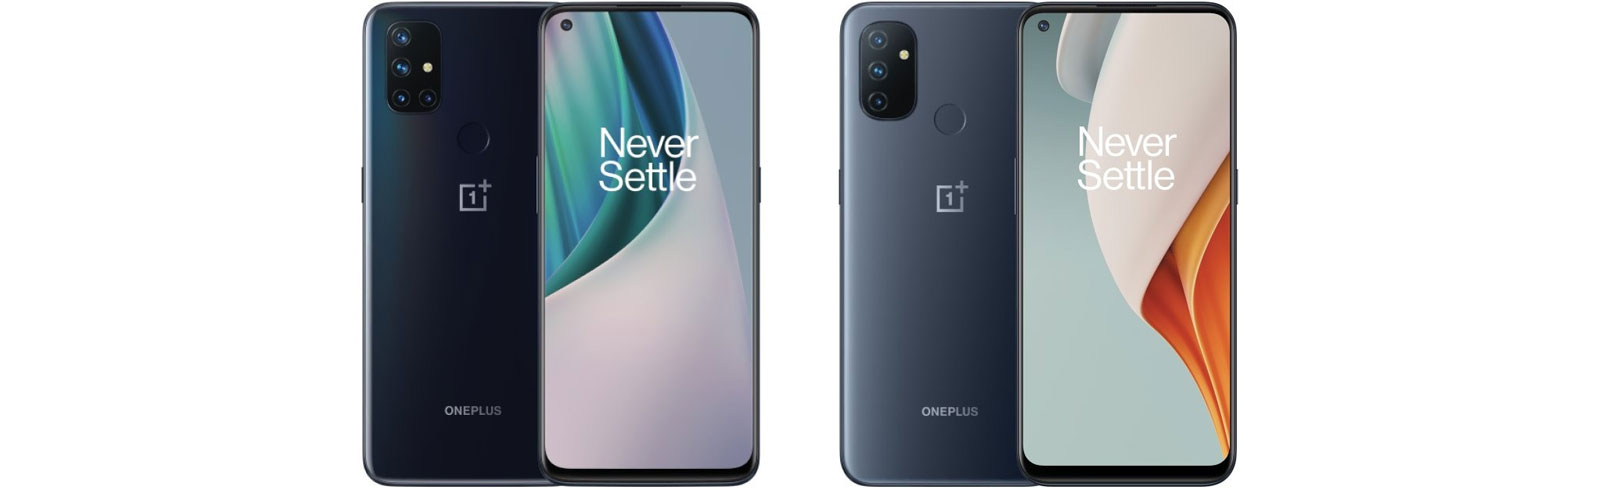 OnePlus Nord N10 5G and Nord N100 go official, will be available in Europe and the US